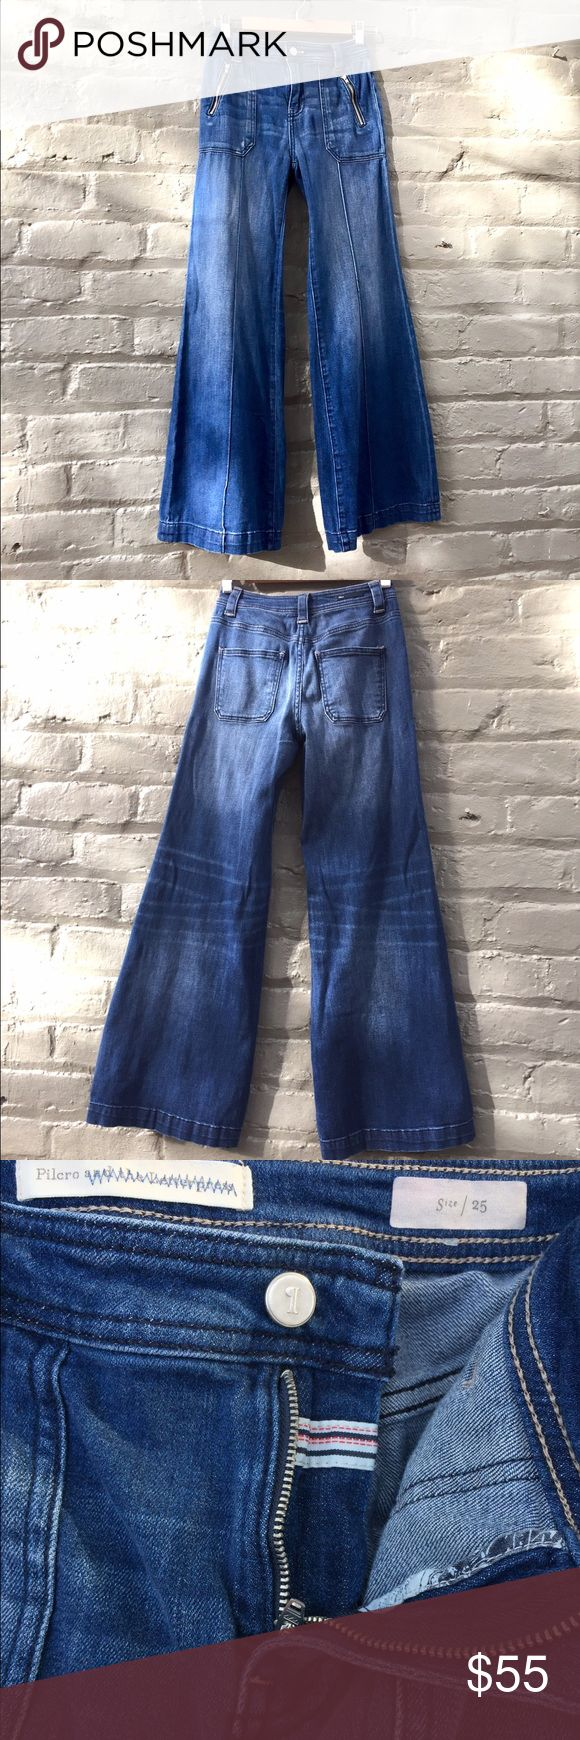 Anthropologie Pilcro Jeans Pilcro and the letterman Flare Jeans. High Rise, Med Wash, size 25. Anthropologie Jeans